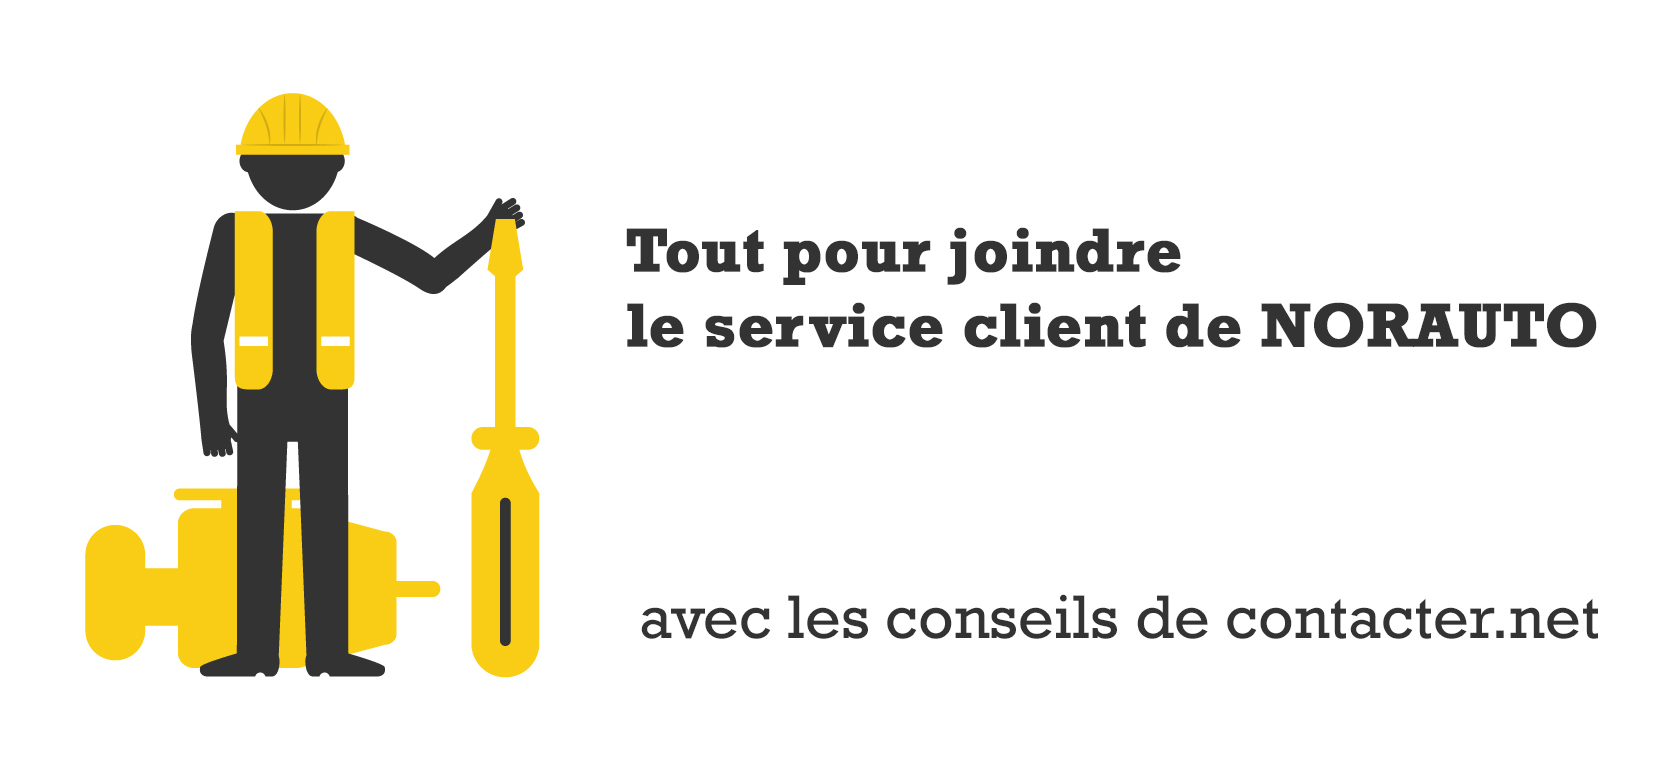 joindre service client norauto